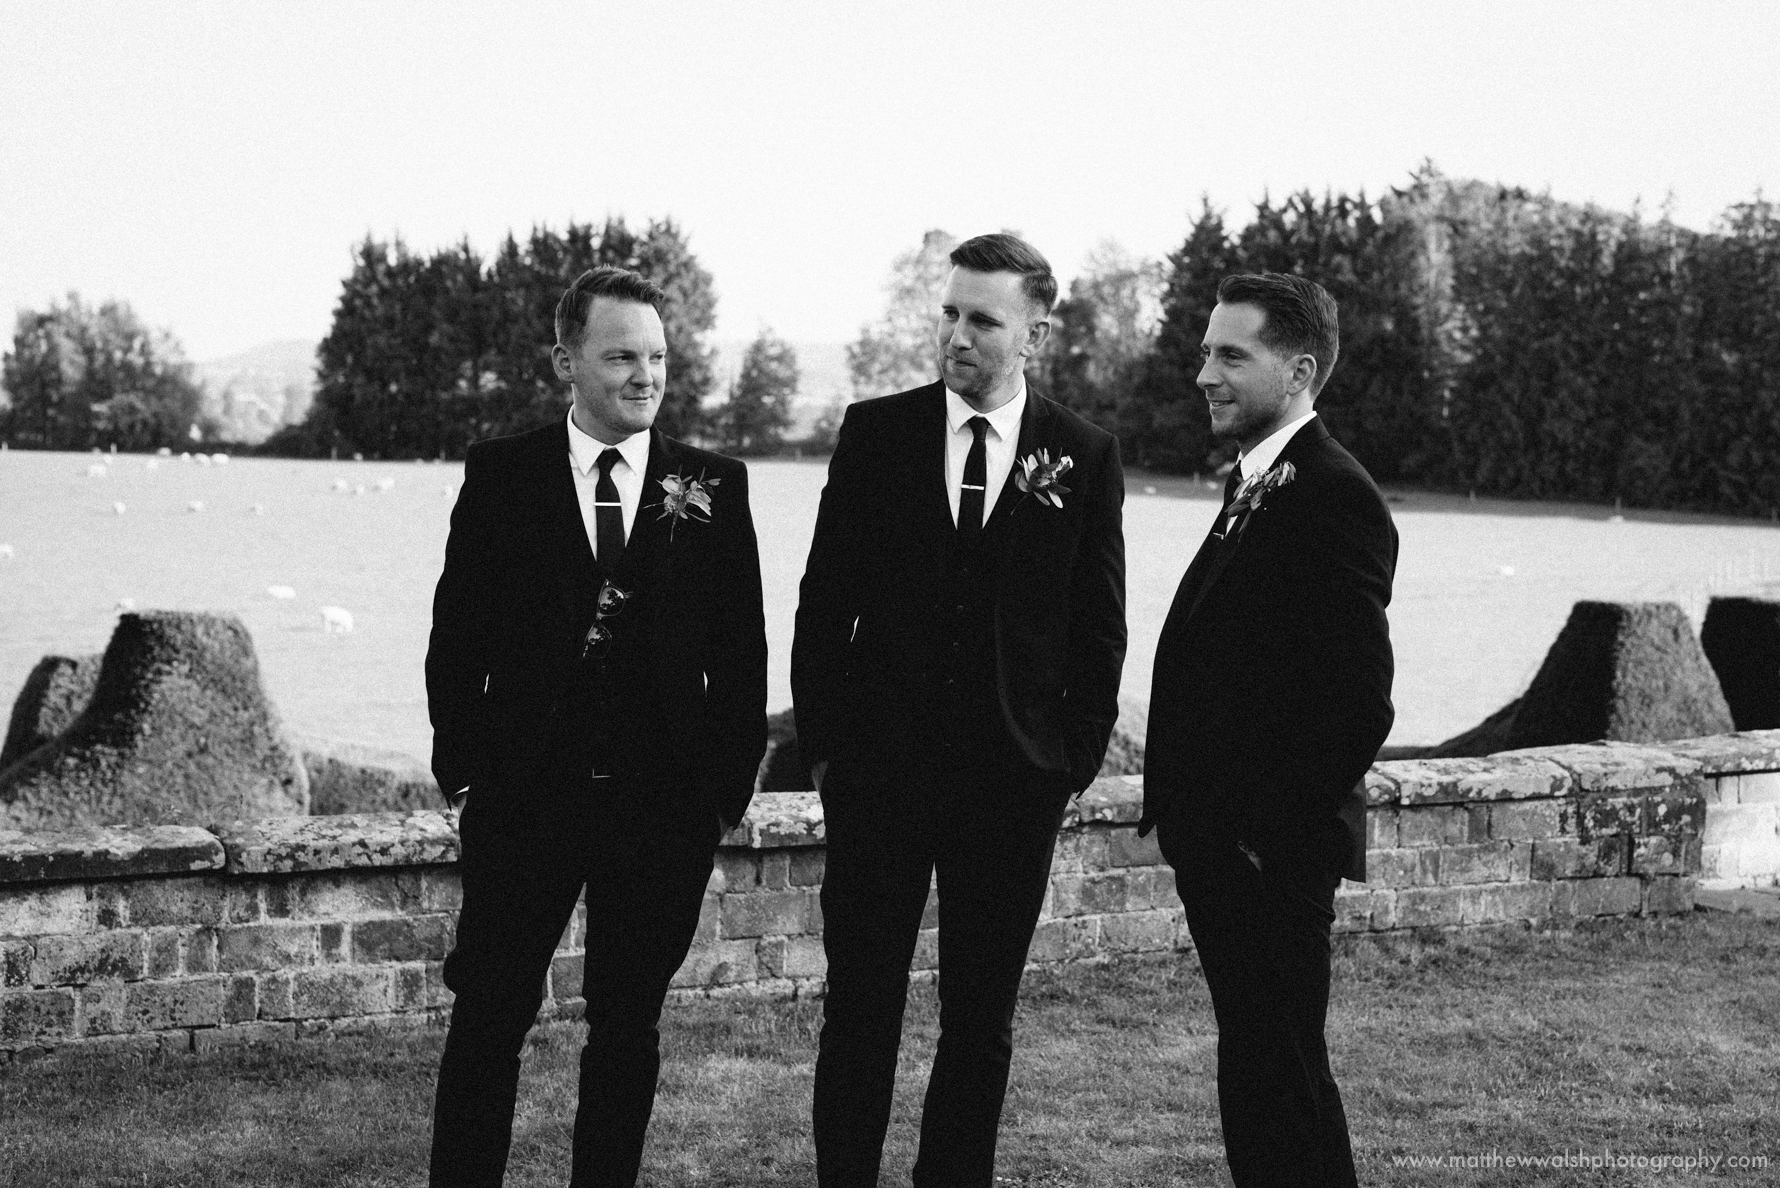 Unposed groomsmen